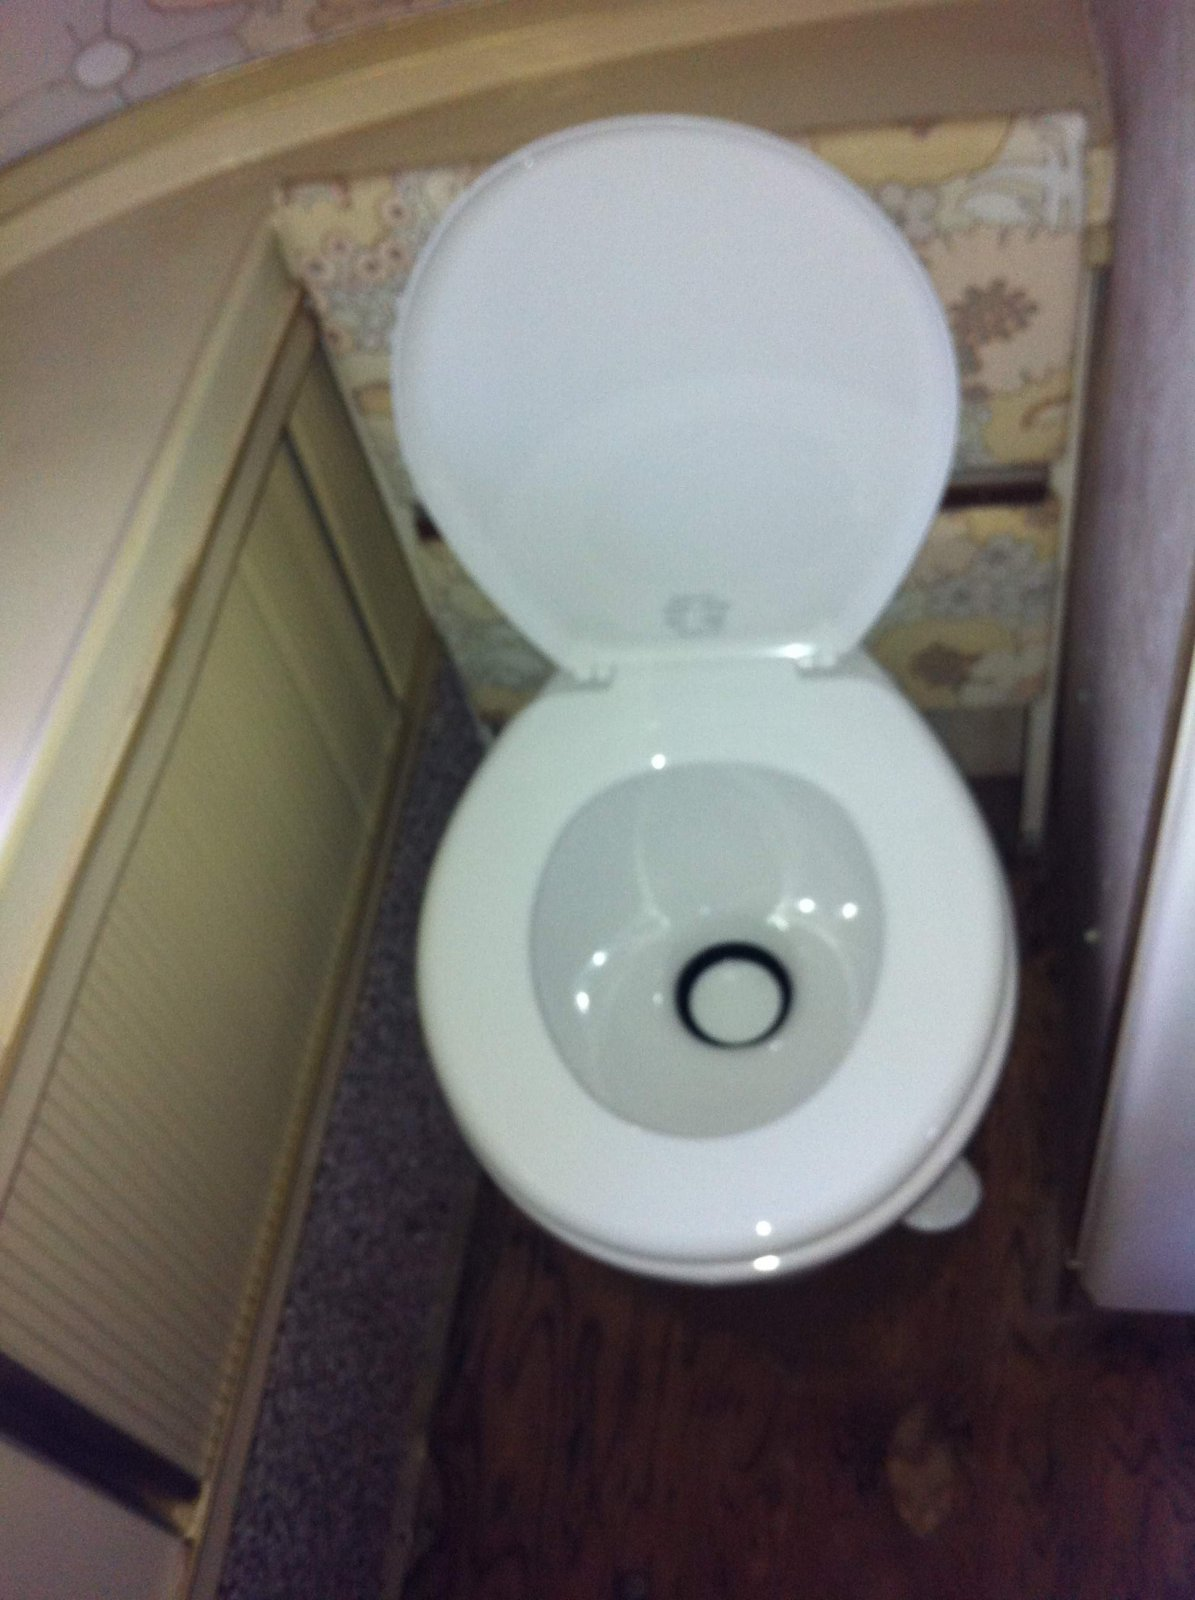 Click image for larger version  Name:New Toilet Open.jpg Views:48 Size:217.5 KB ID:182194